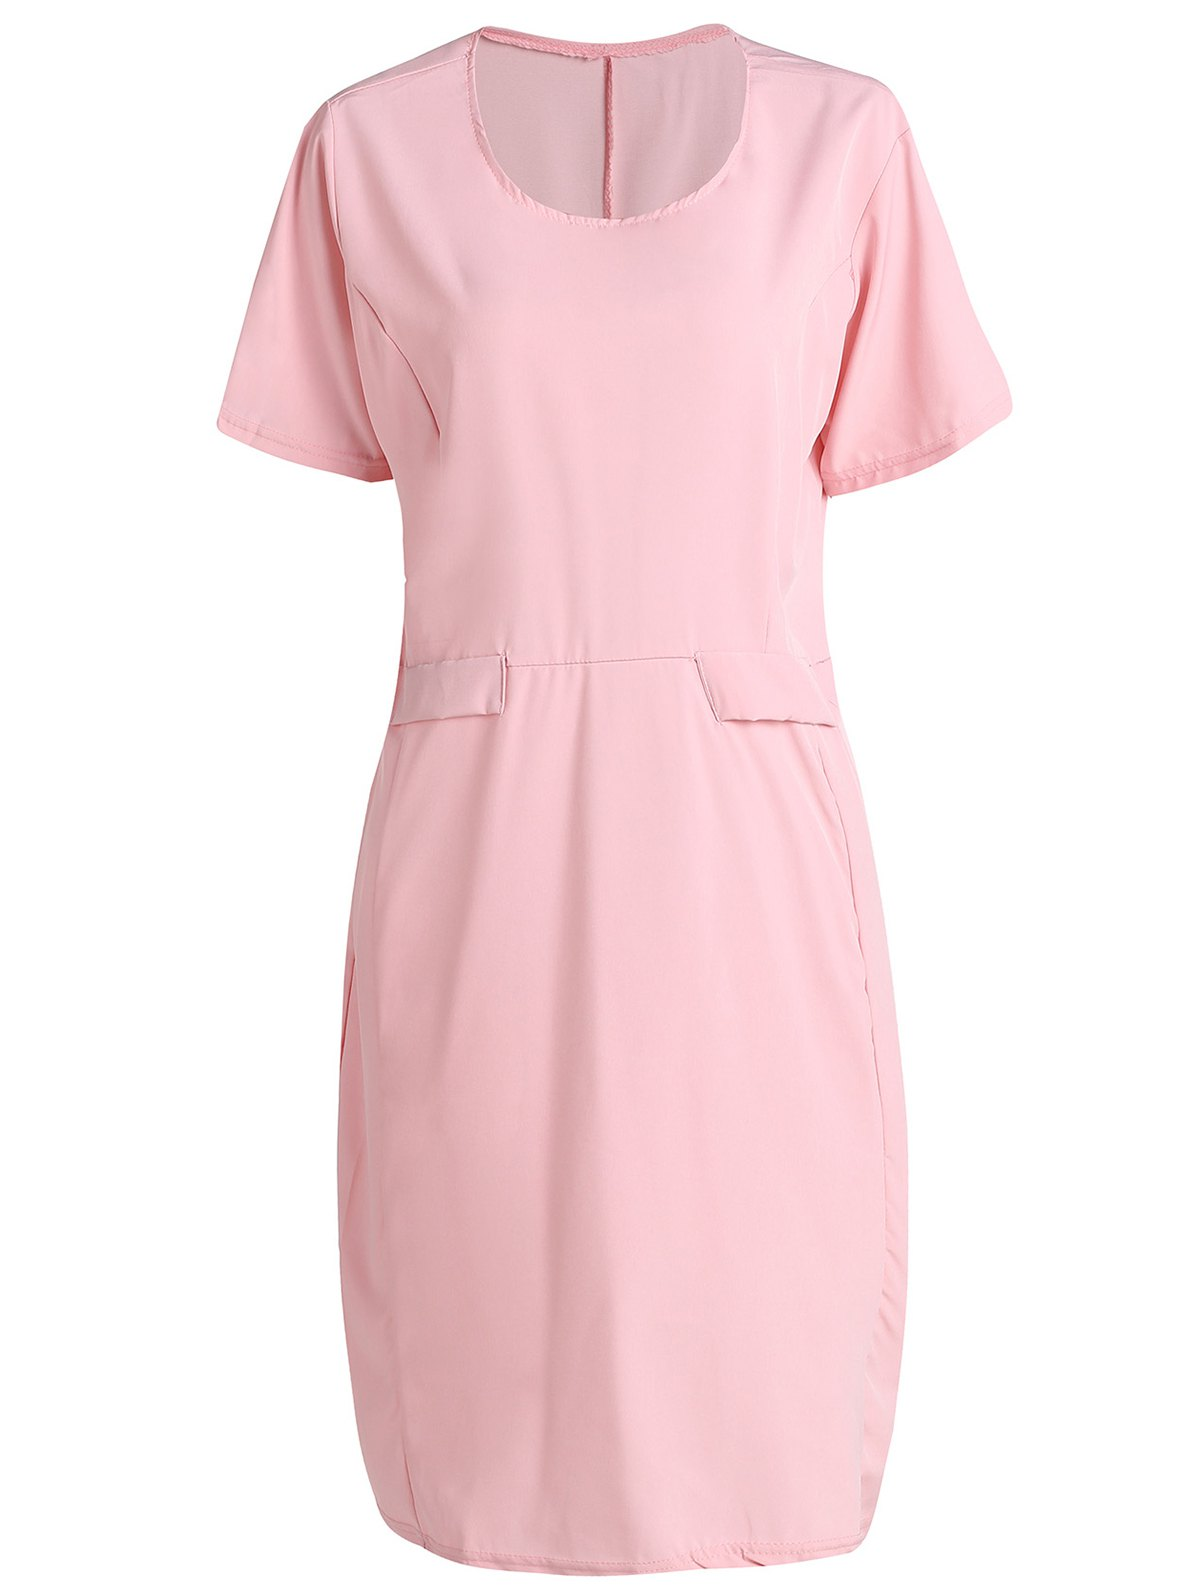 Graceful Pink Round Collar Short Sleeve Dress For Women - XL PINK